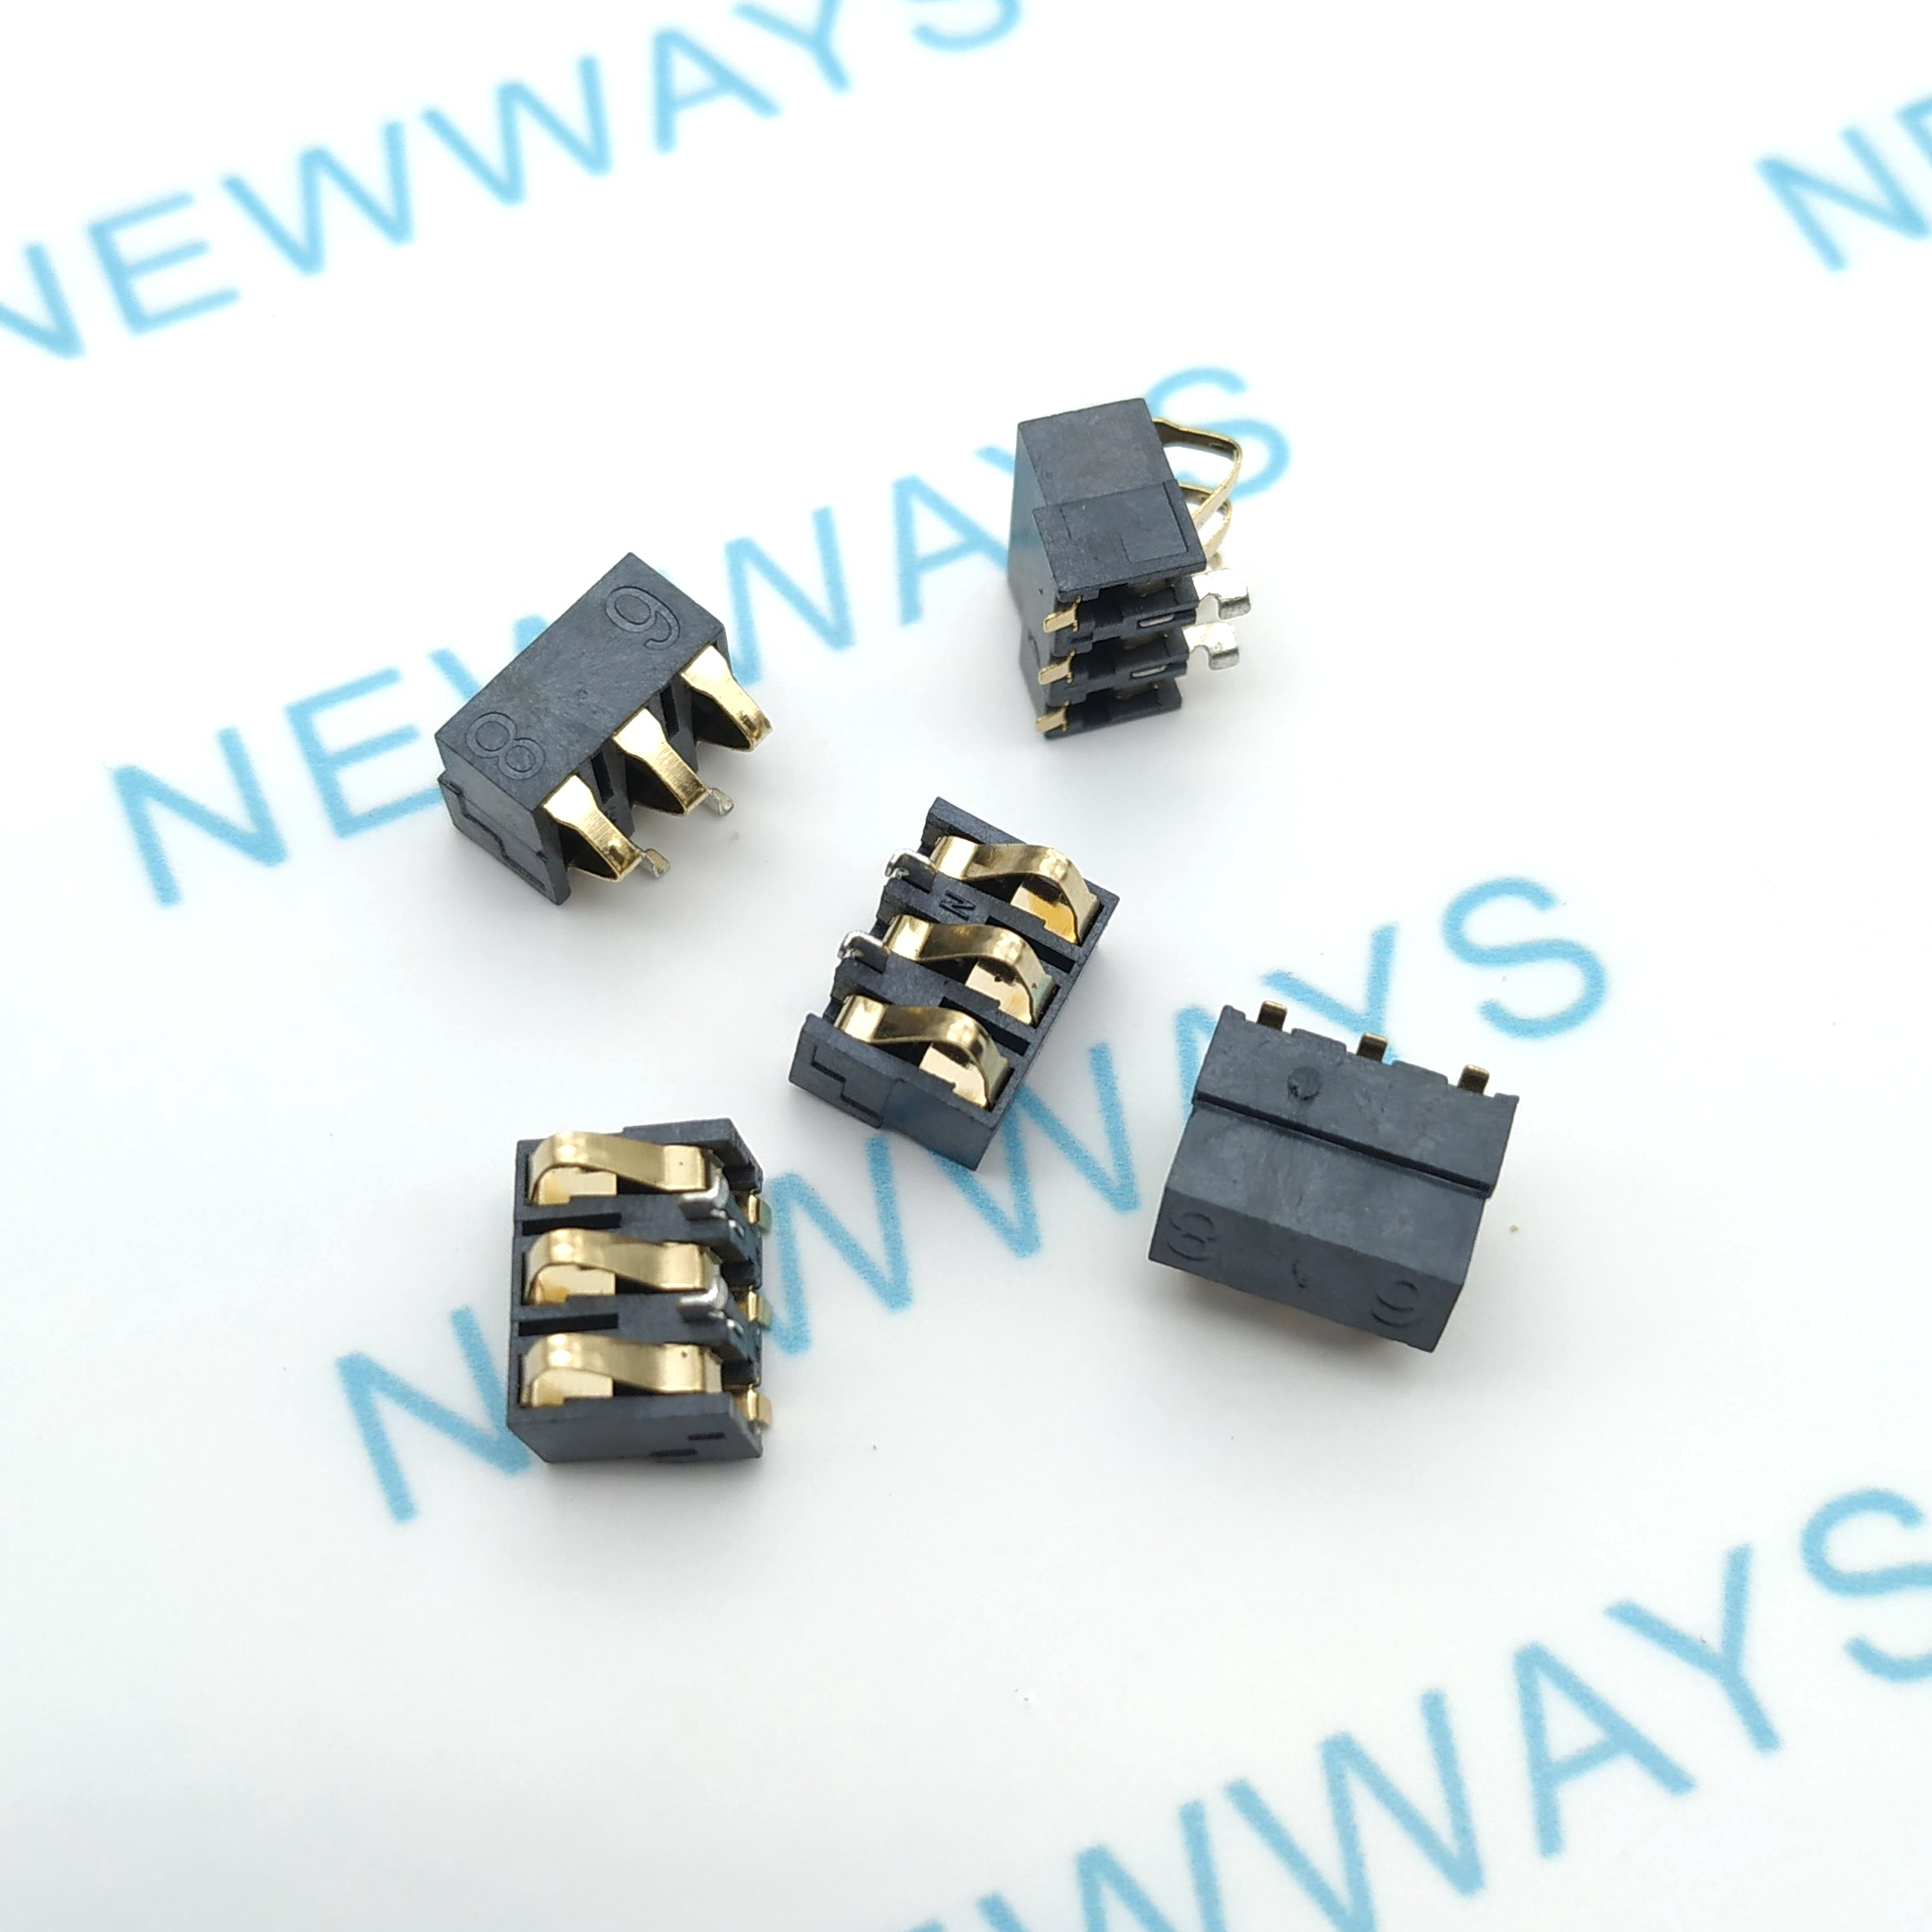 10pcs/lot 68 battery holder 3p shrapnel type battery connector Mobile phone battery contact plate height of 6.8mm free shipping10pcs/lot 68 battery holder 3p shrapnel type battery connector Mobile phone battery contact plate height of 6.8mm free shipping